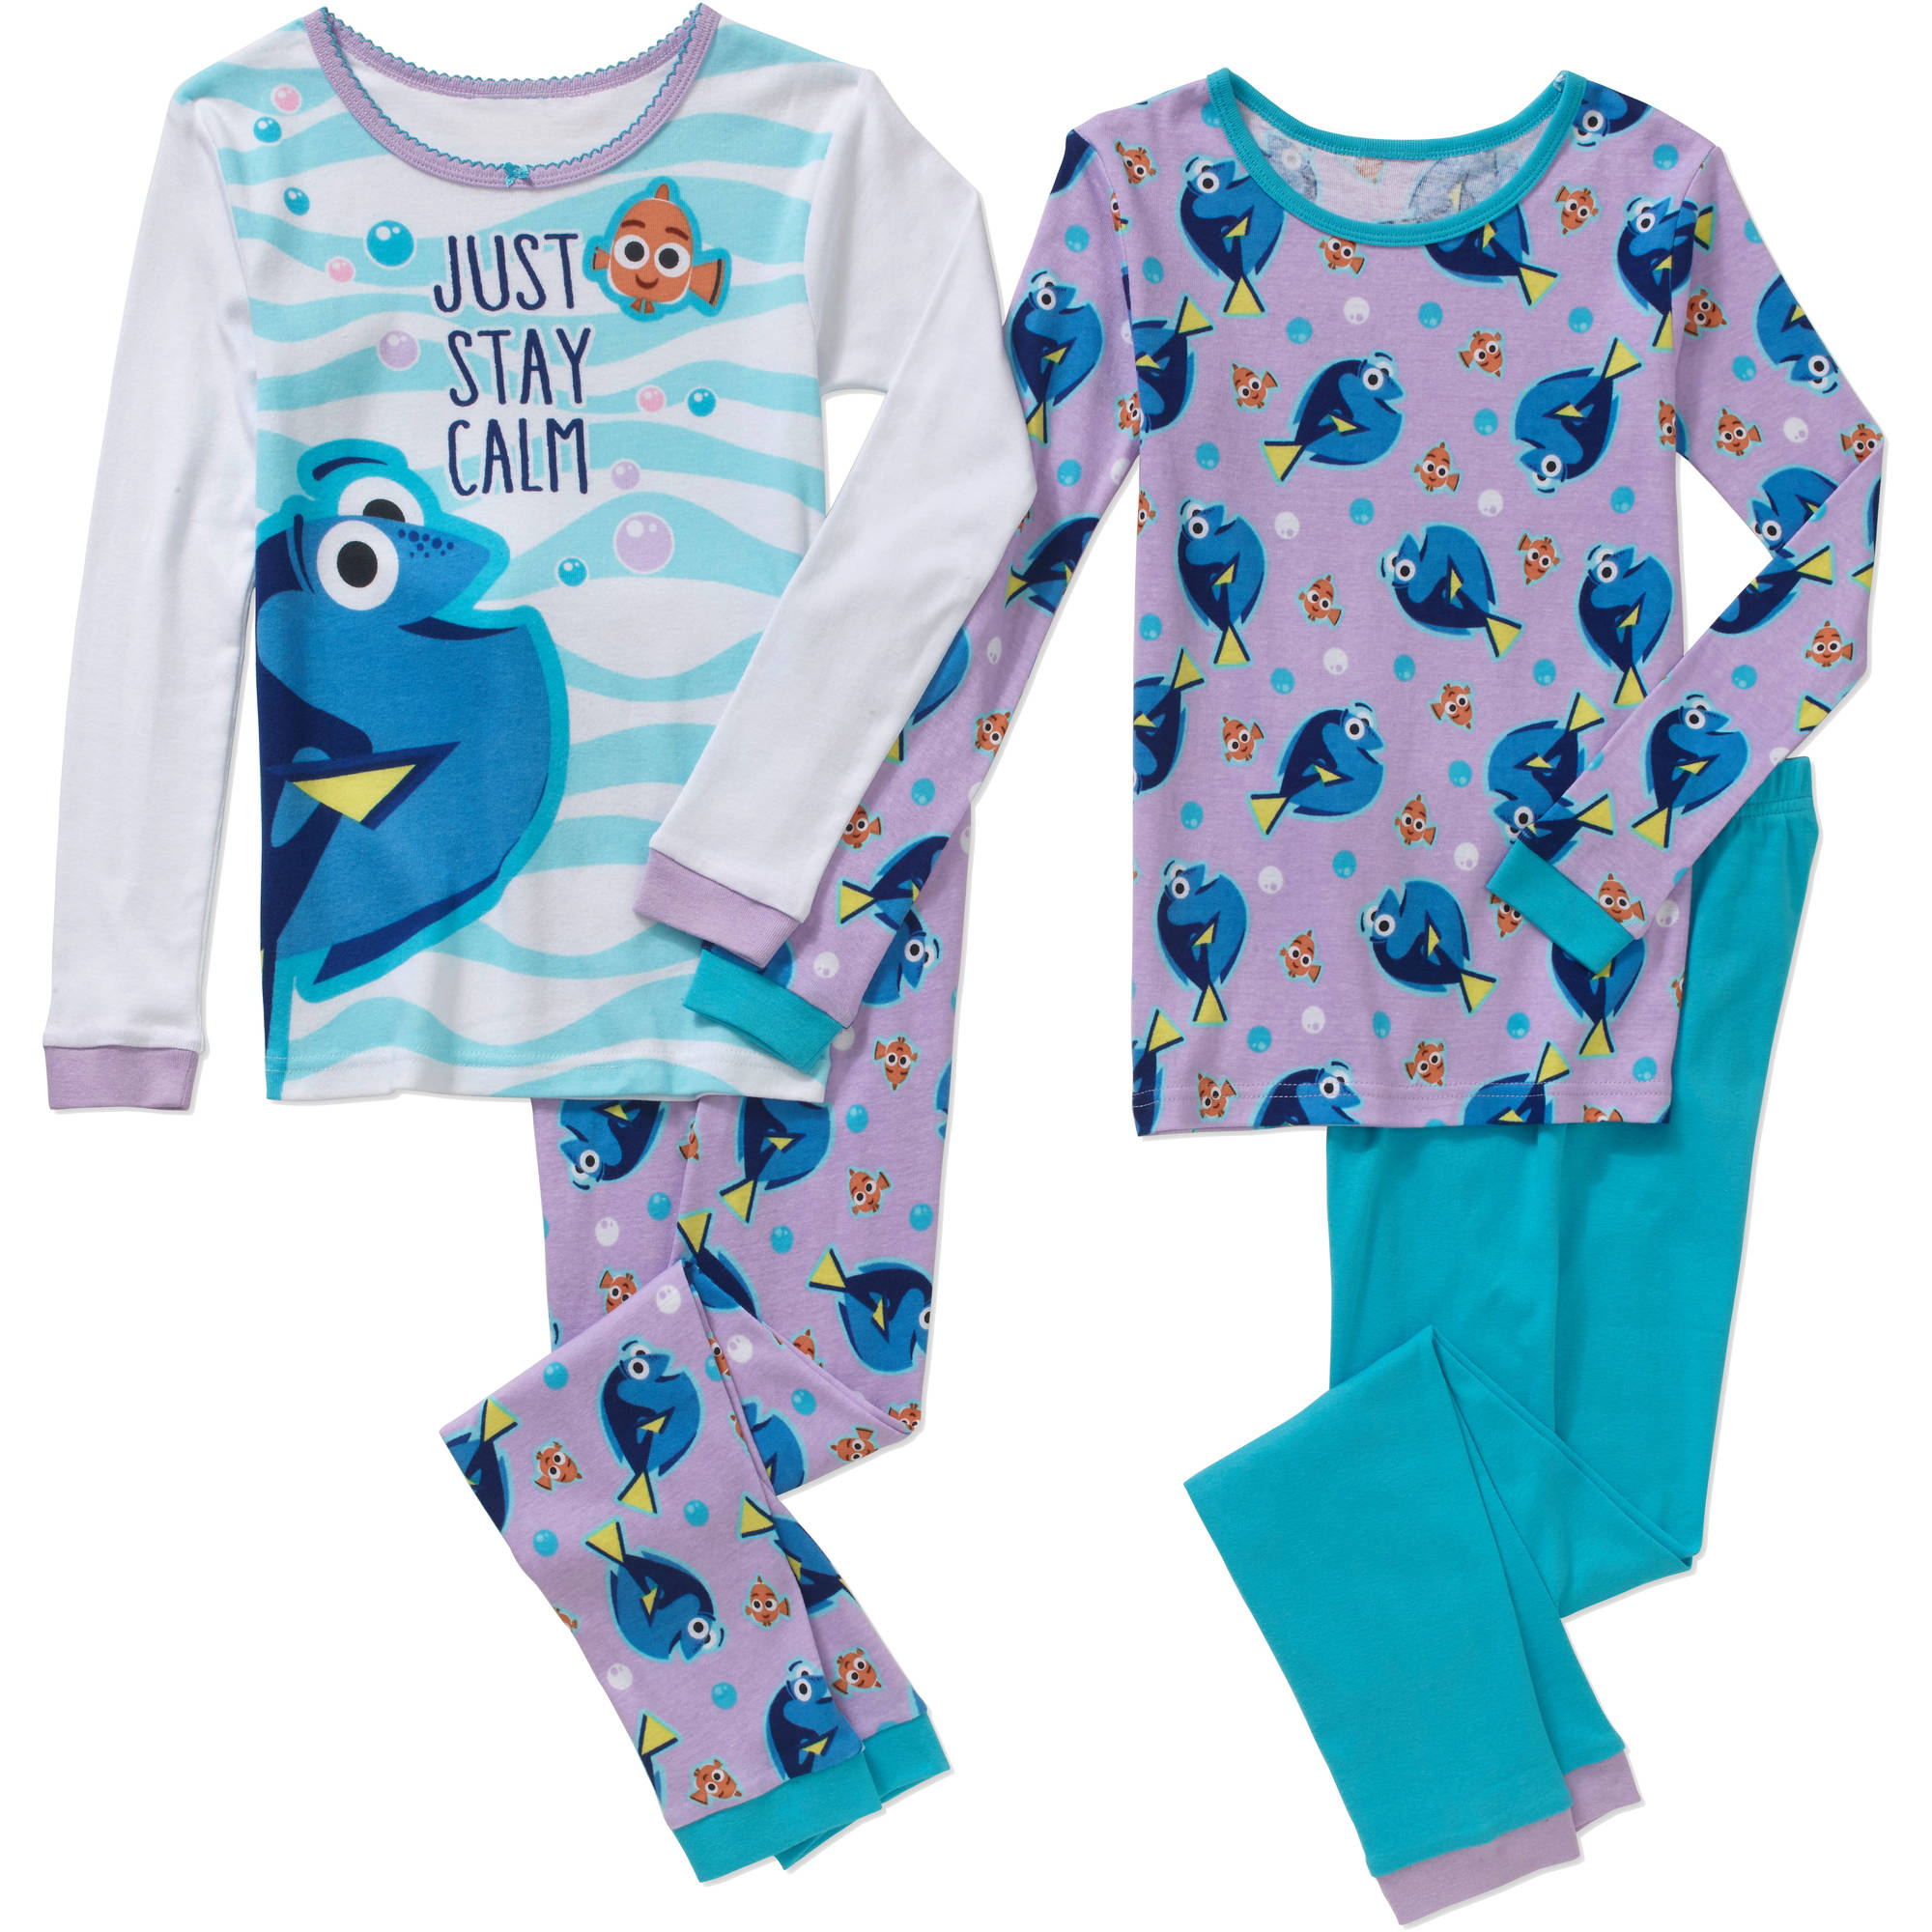 Finding Dory Girls' Licensed 4-Piece Cotton Pj